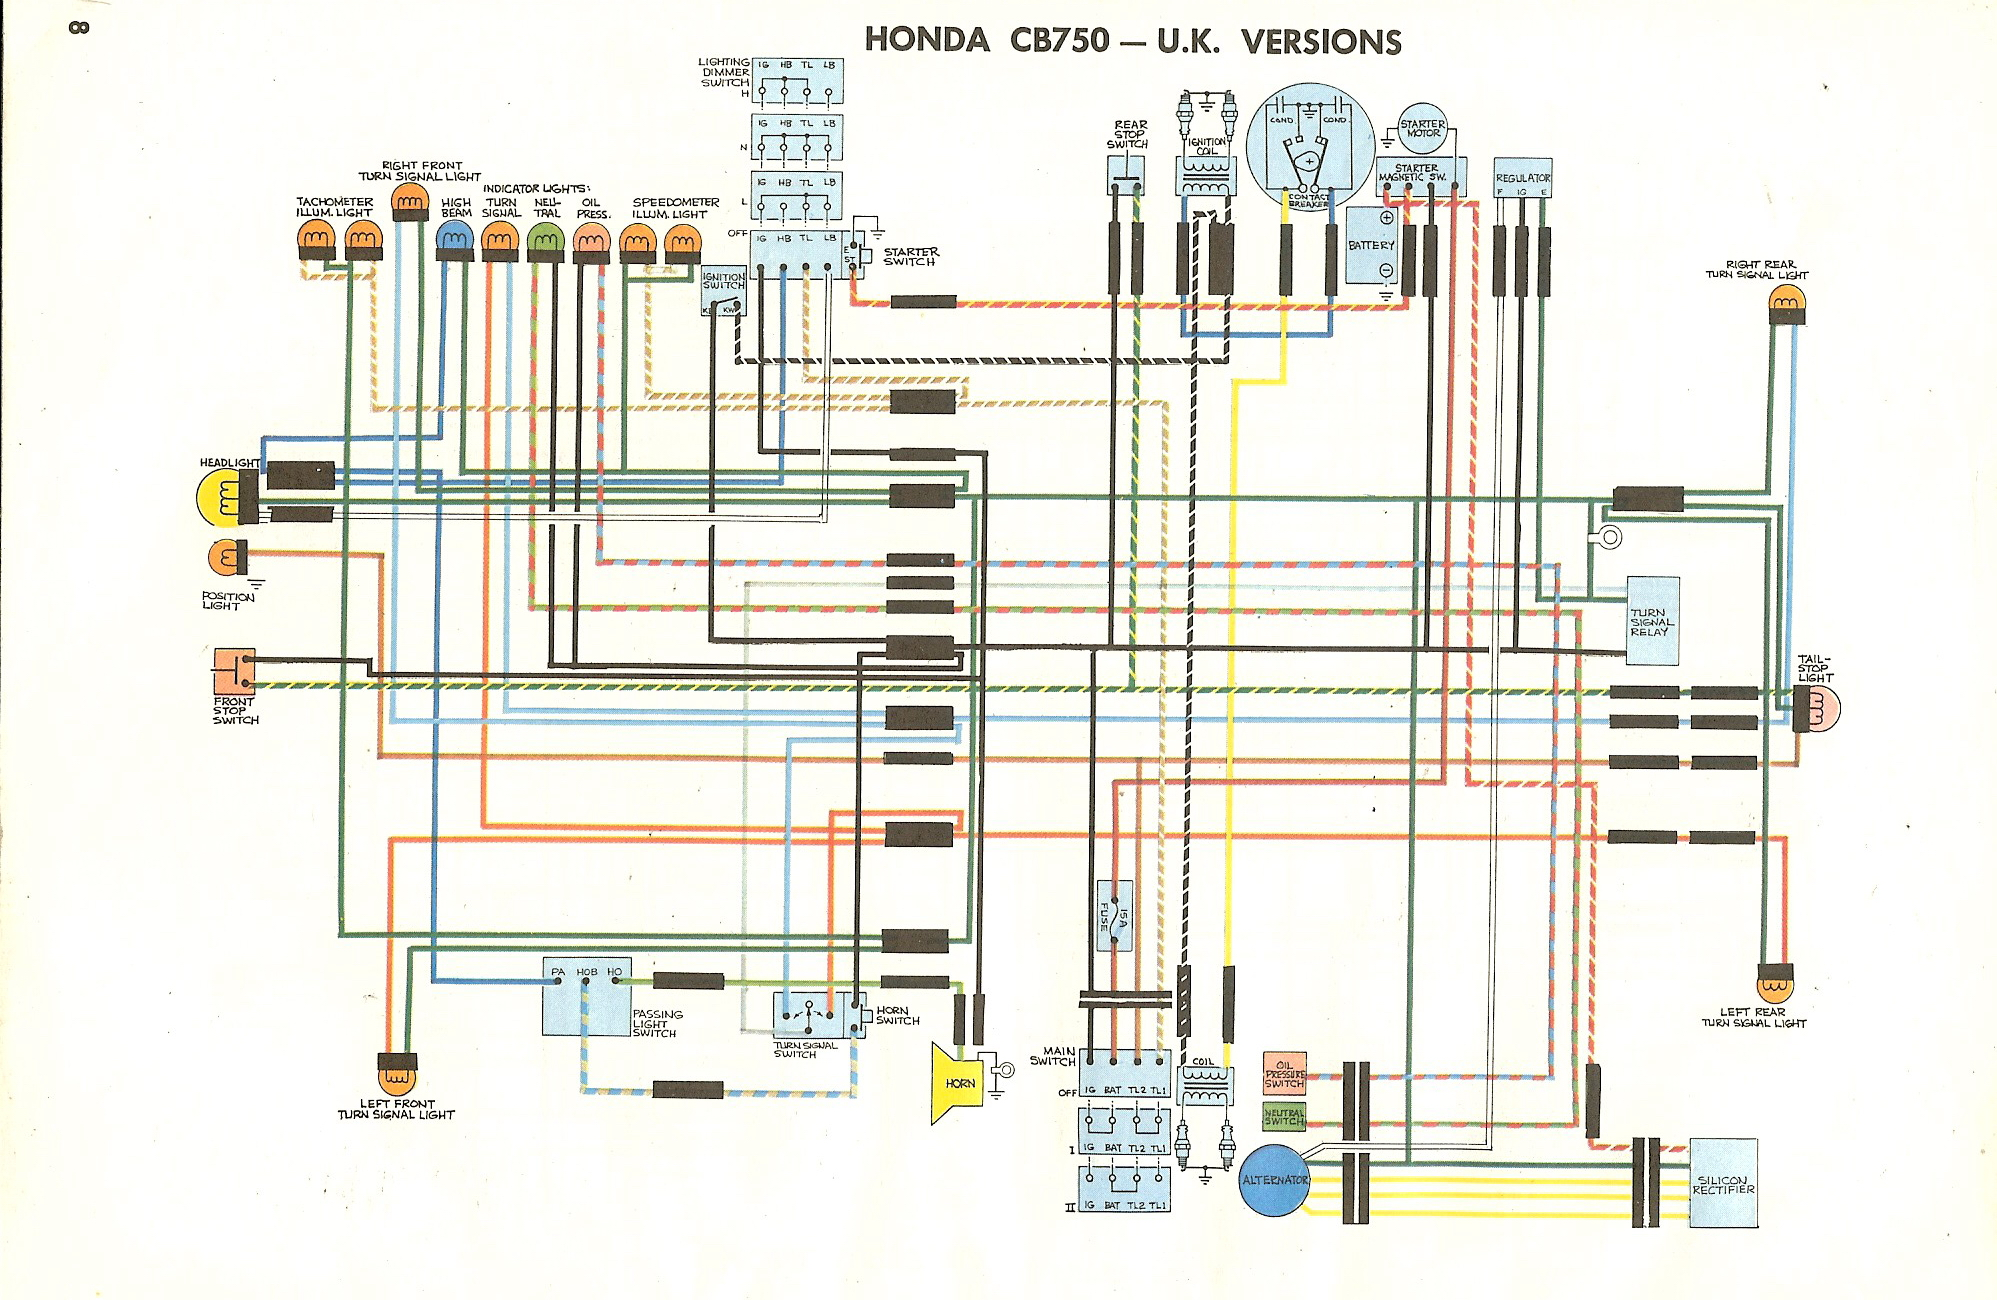 WD750UK cb750k wiring diagram motorcycle ignition wiring diagram \u2022 wiring cb750 minimal wiring harness at suagrazia.org